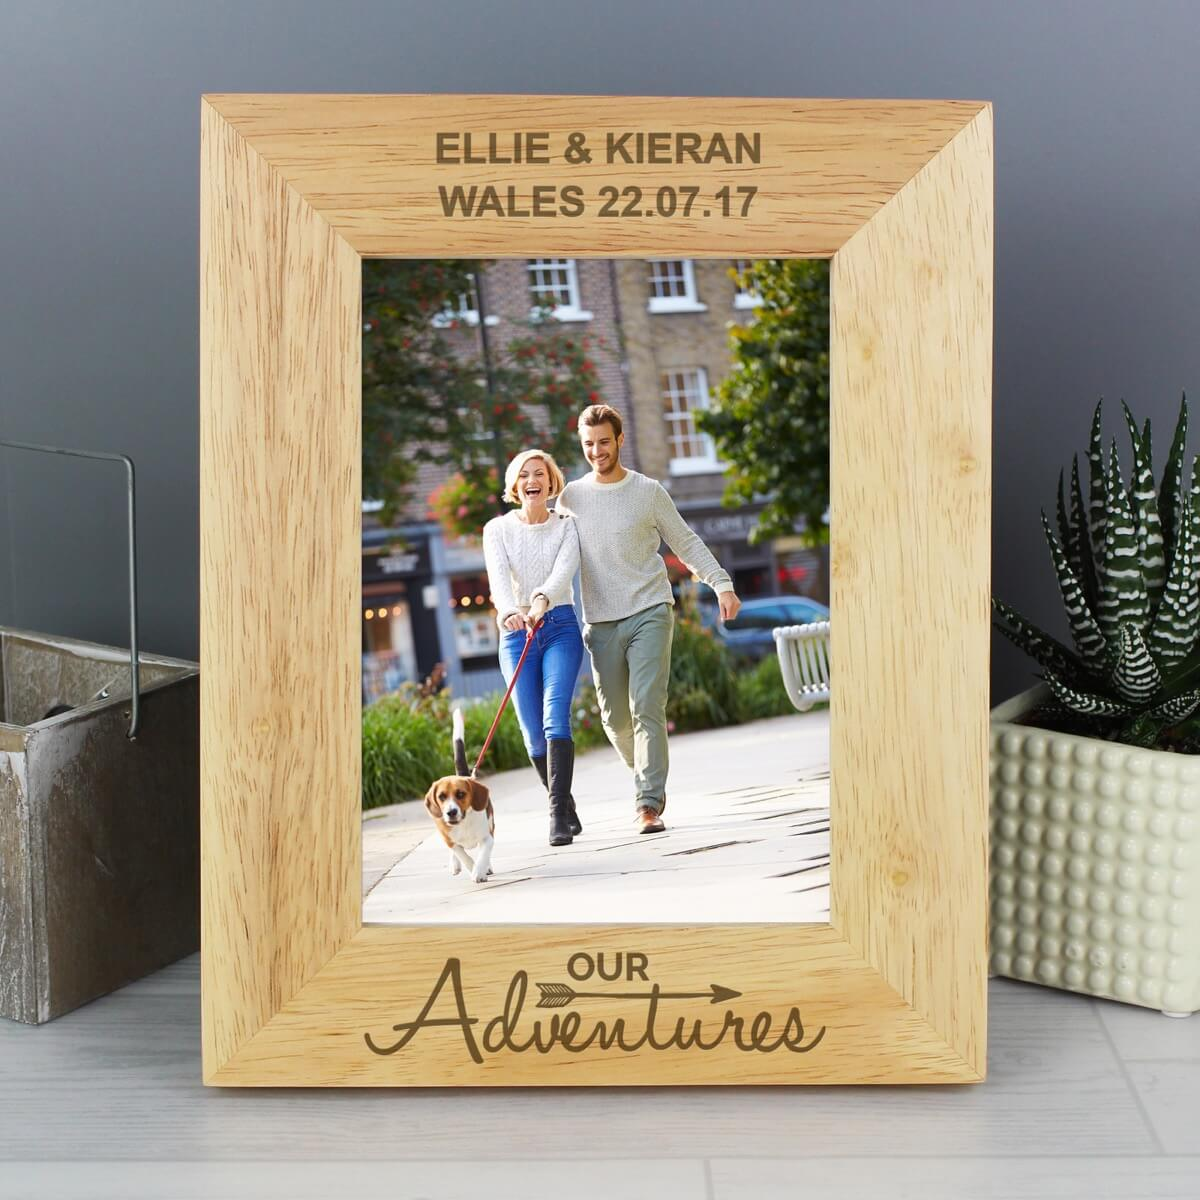 Personalised Our Adventures 7×5 Wooden Photo Frame